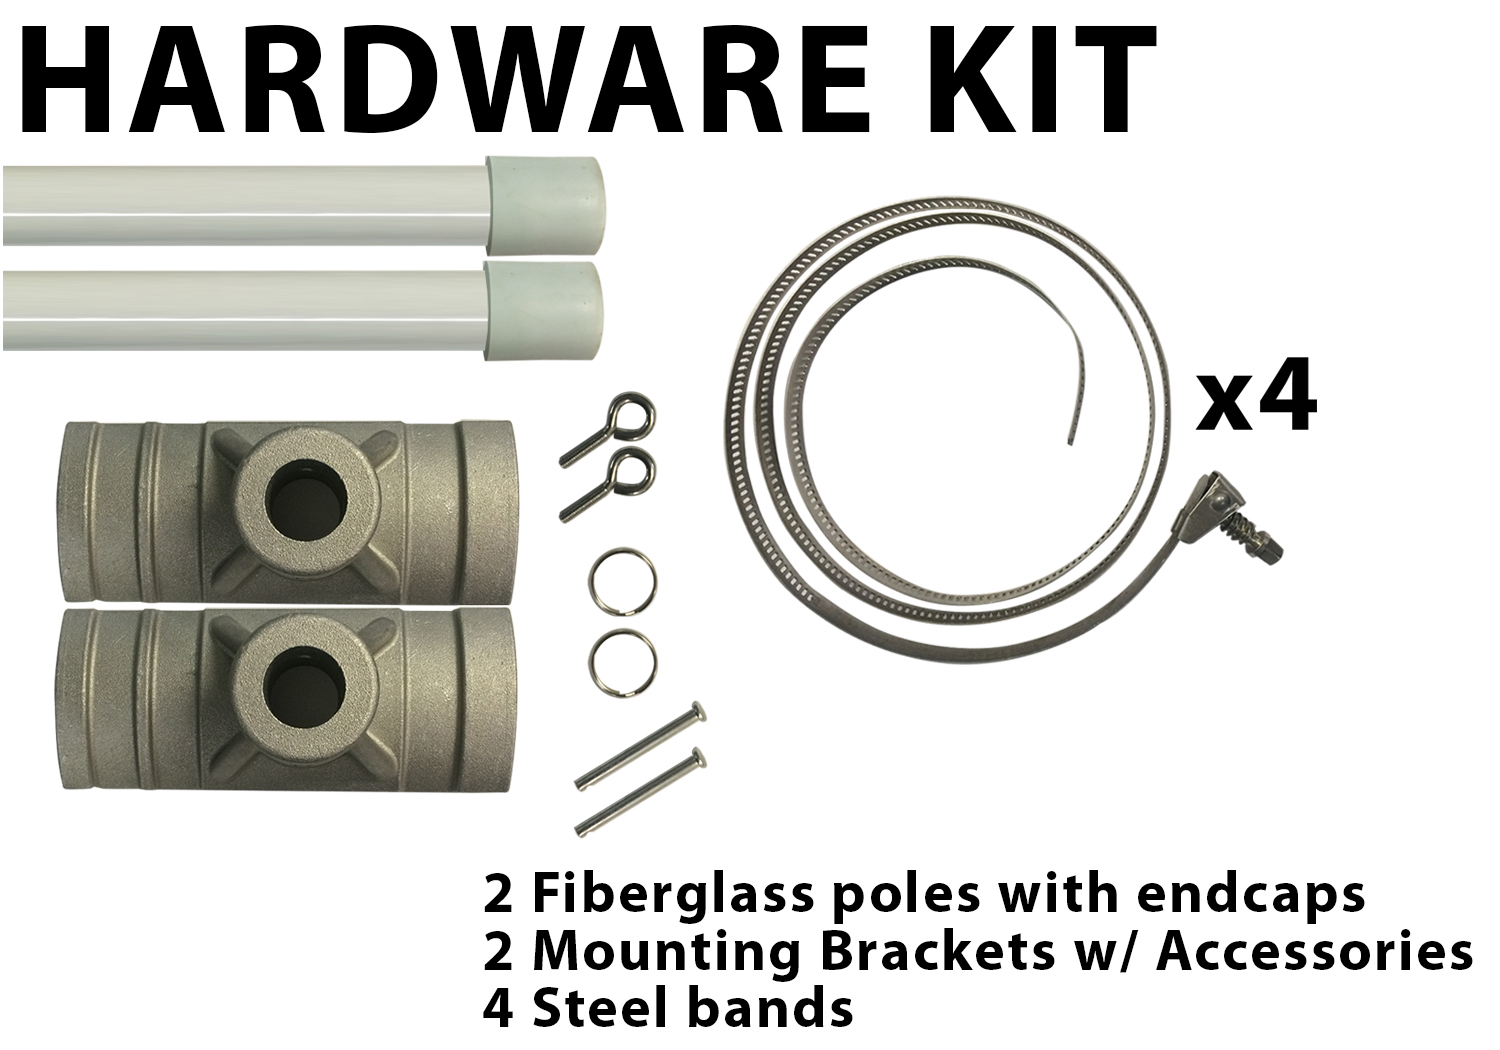 light-pole-banner-hardware-kit.jpg